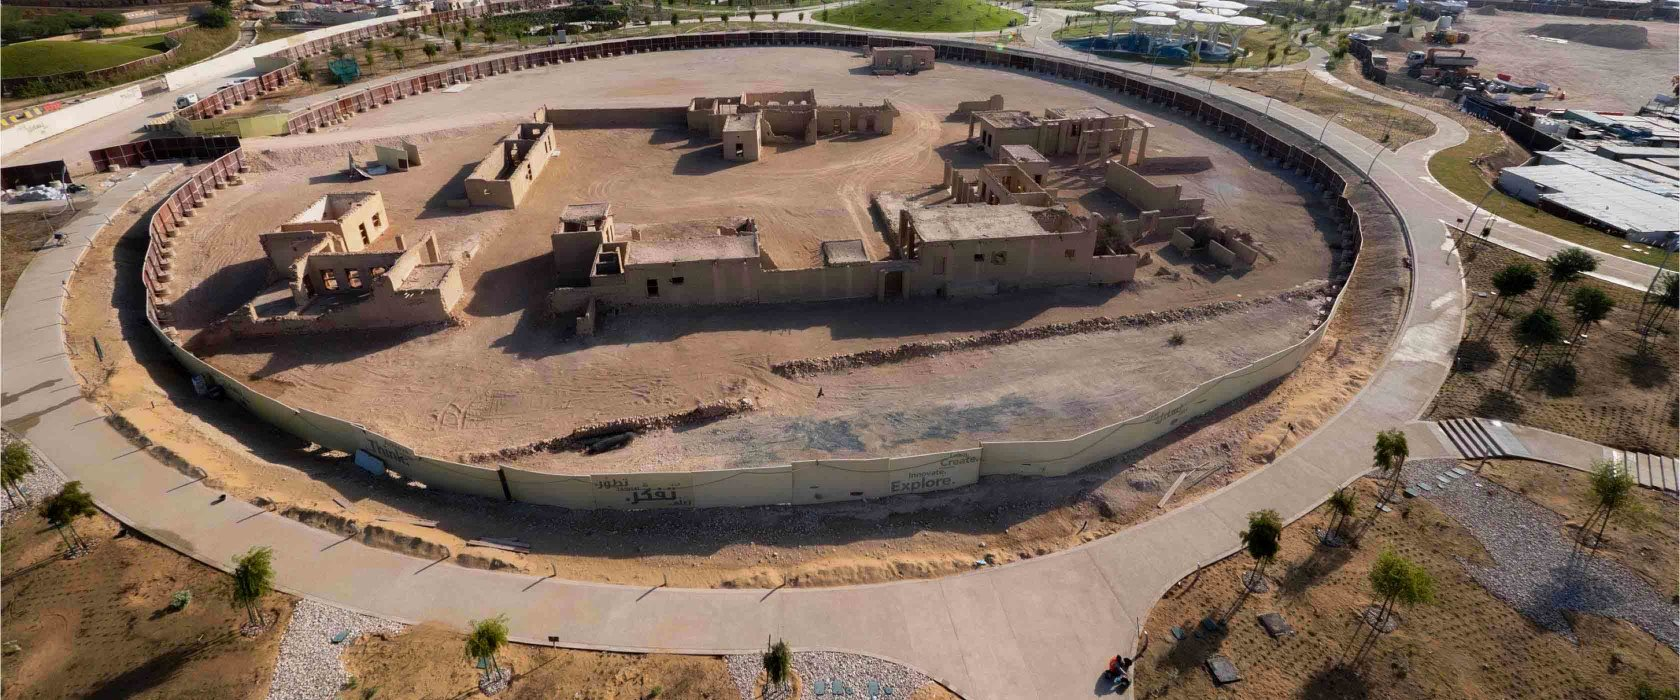 Preserving Qatar's heritage sites within Education City